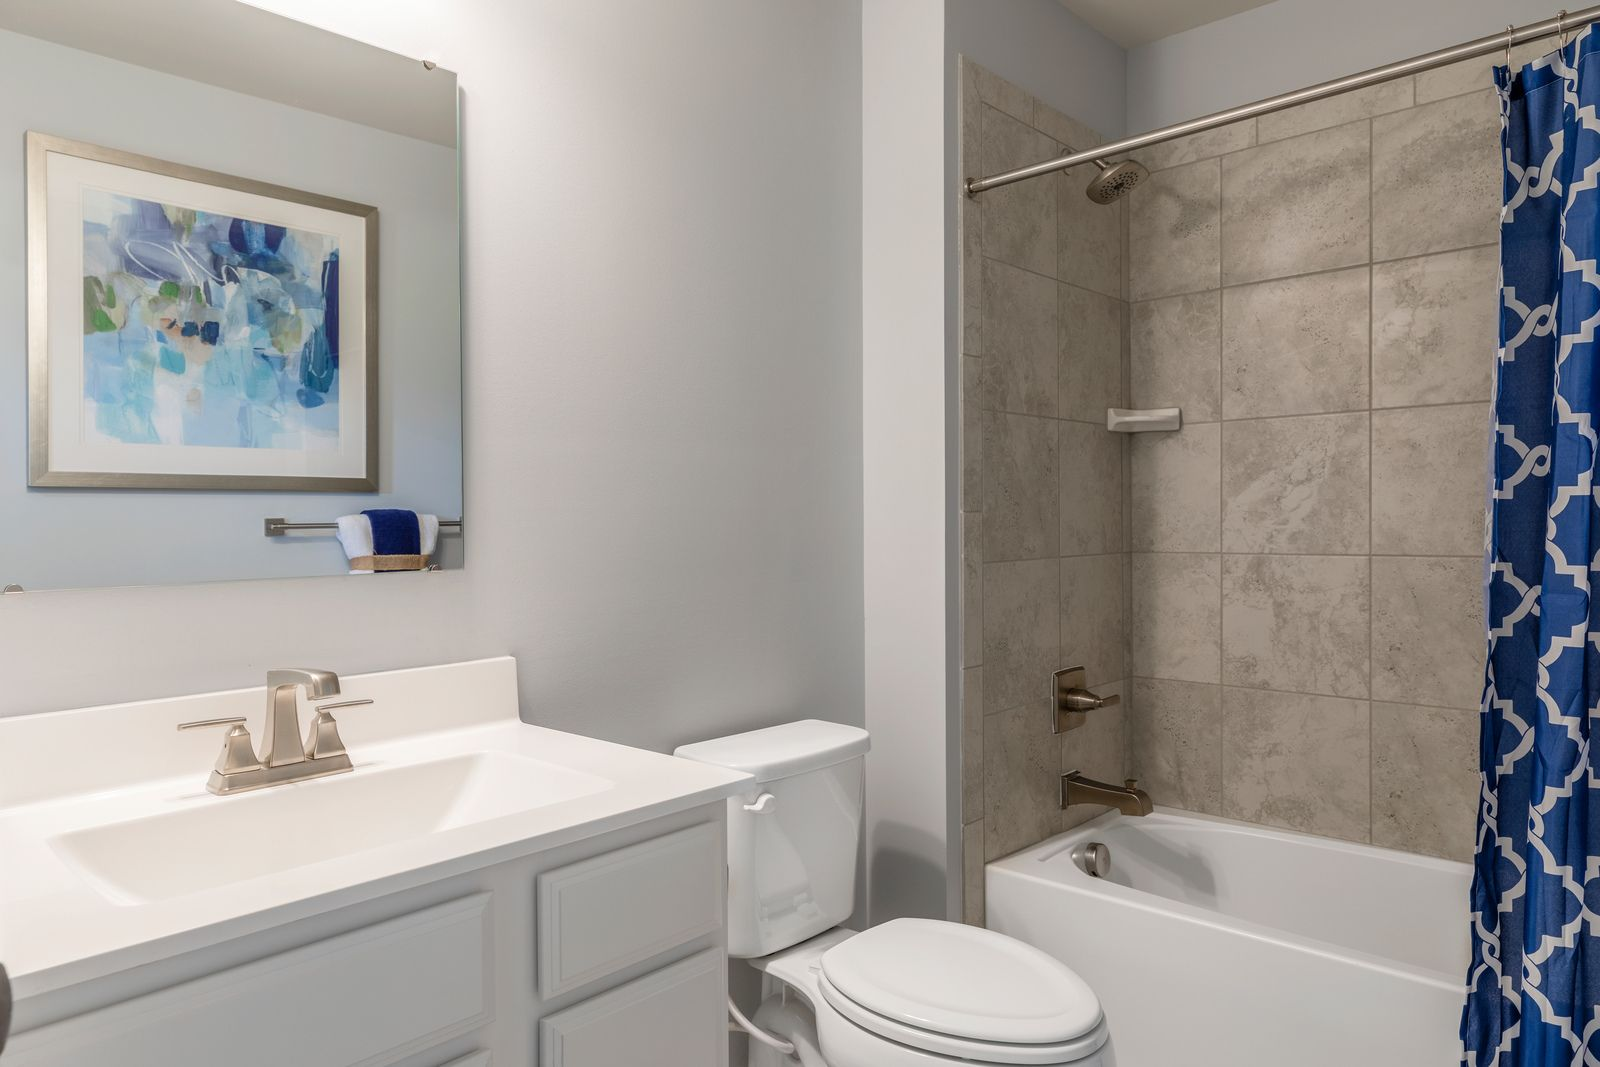 Bathroom featured in the Dominica Spring By Ryan Homes in Dover, DE